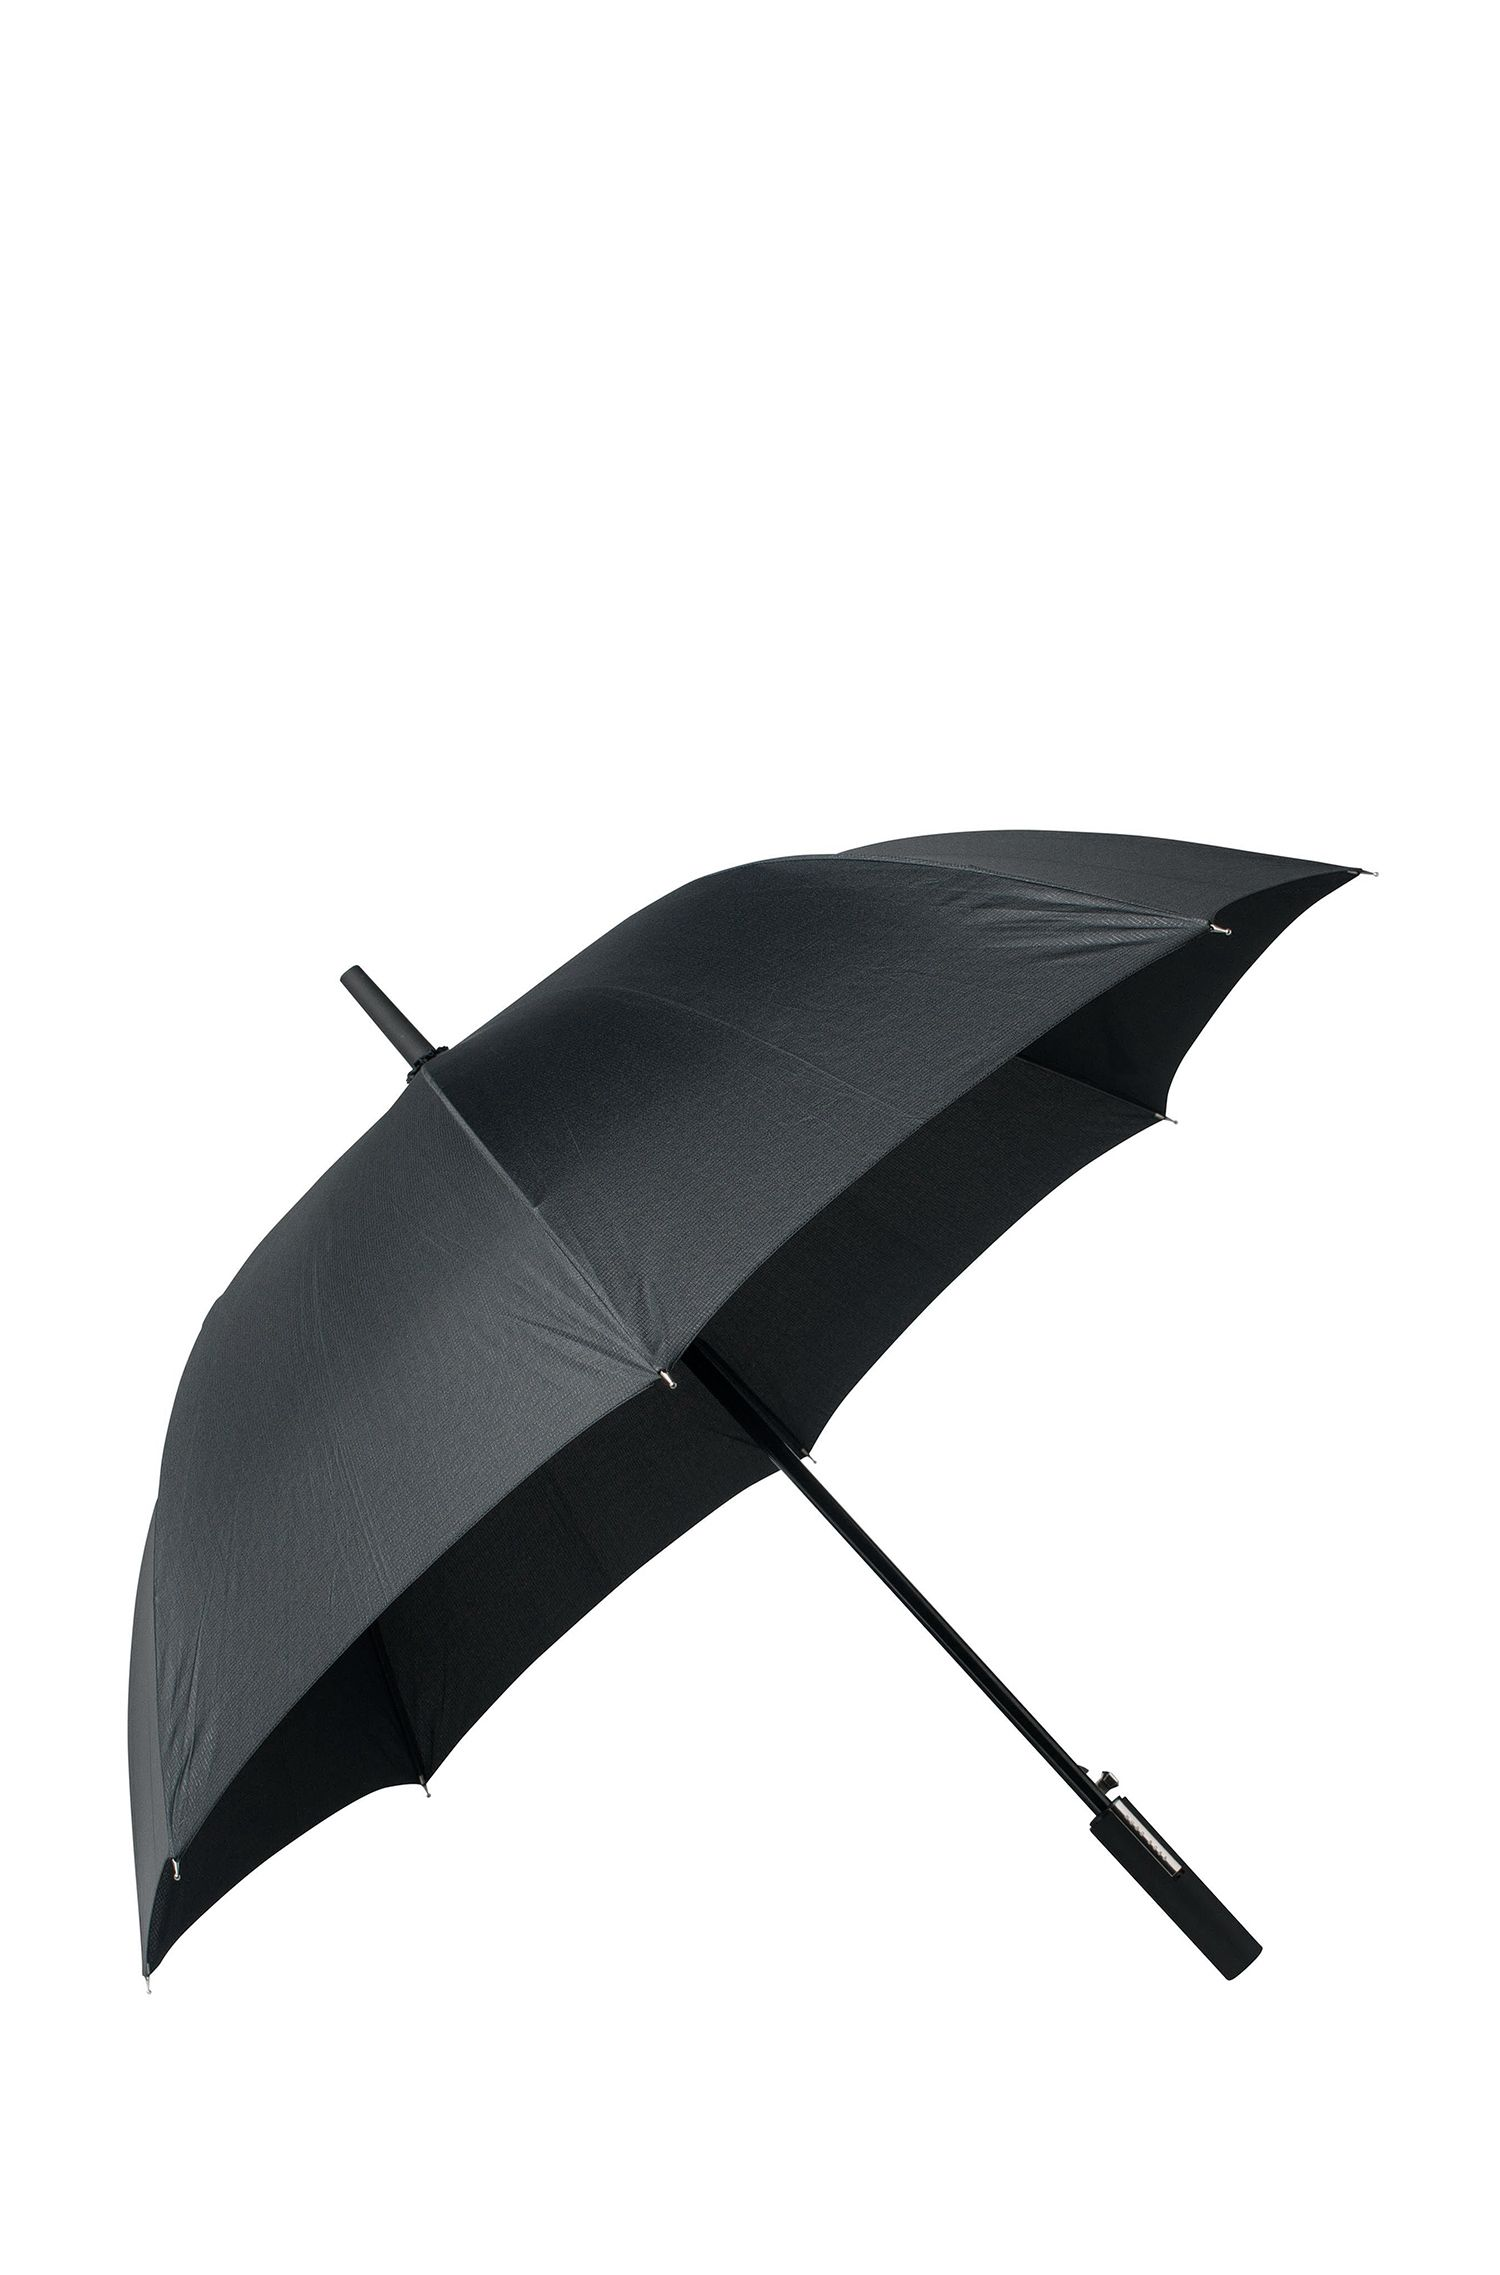 Black patterned umbrella with automatic trigger, Black